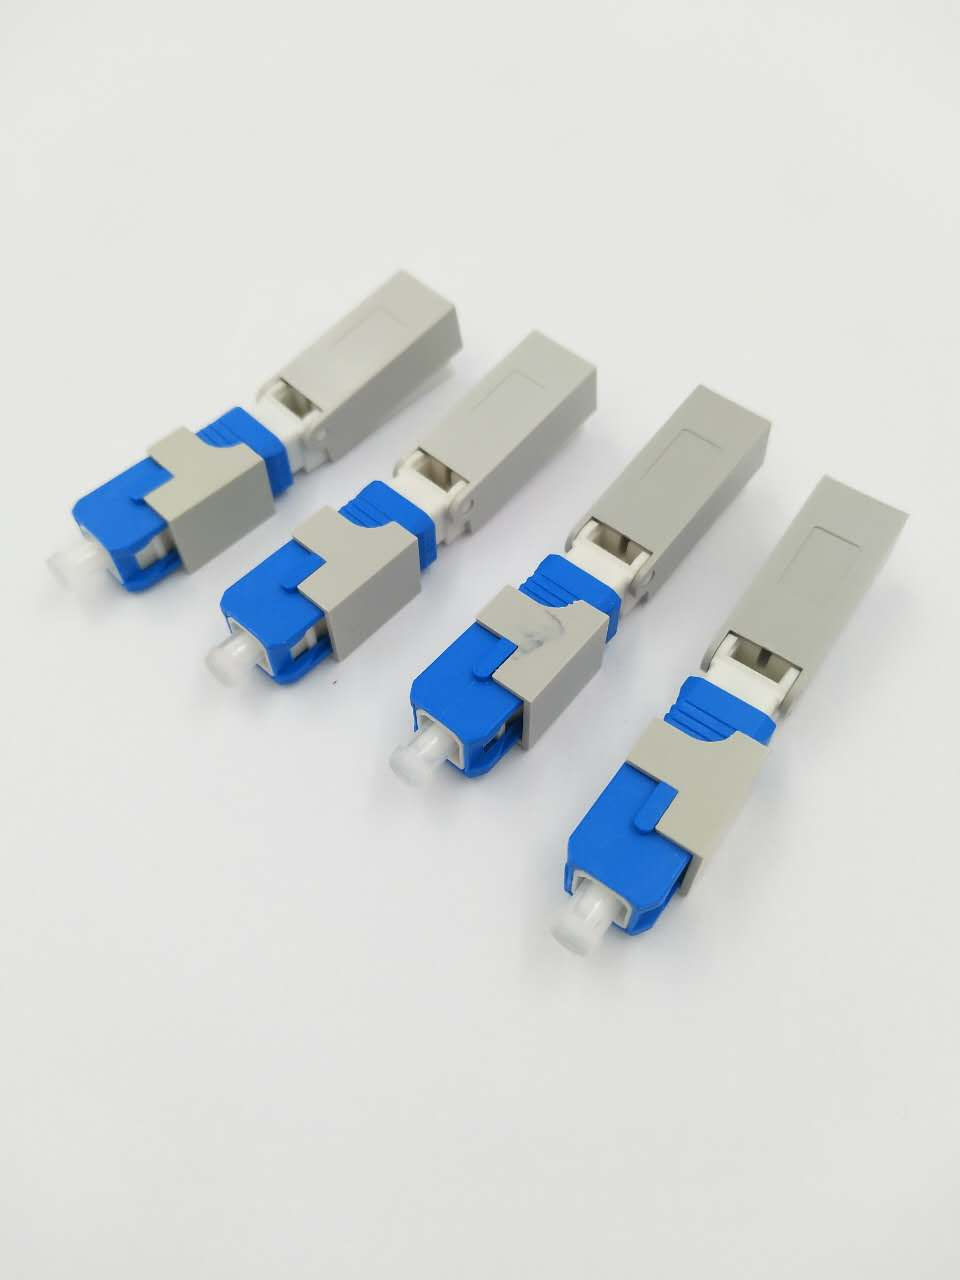 SC fiber optic fast connectors SC/UPC fast connectors